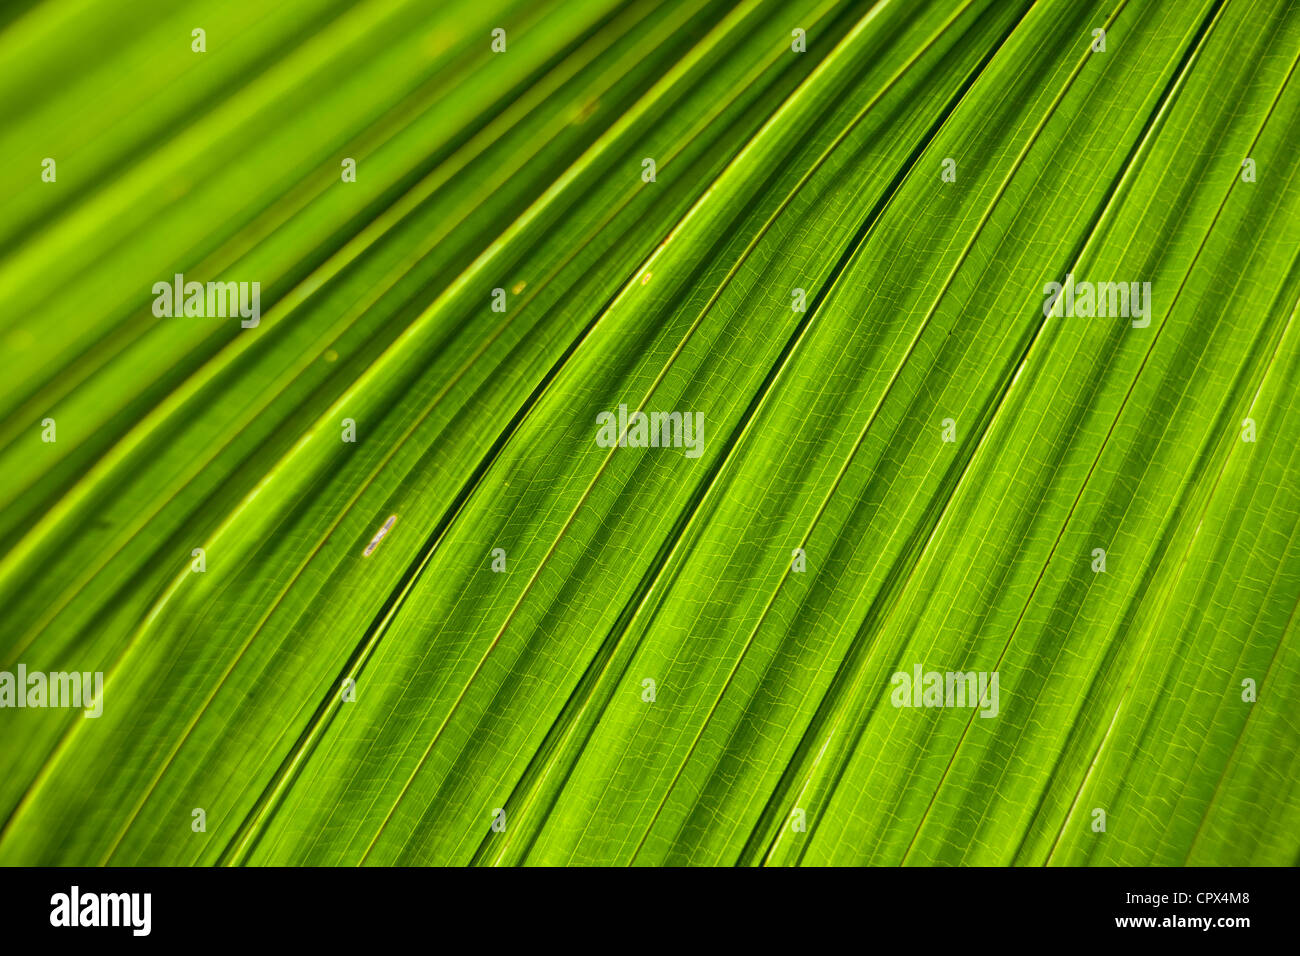 leaf detail, Siquijor, The Visayas, Philippines - Stock Image